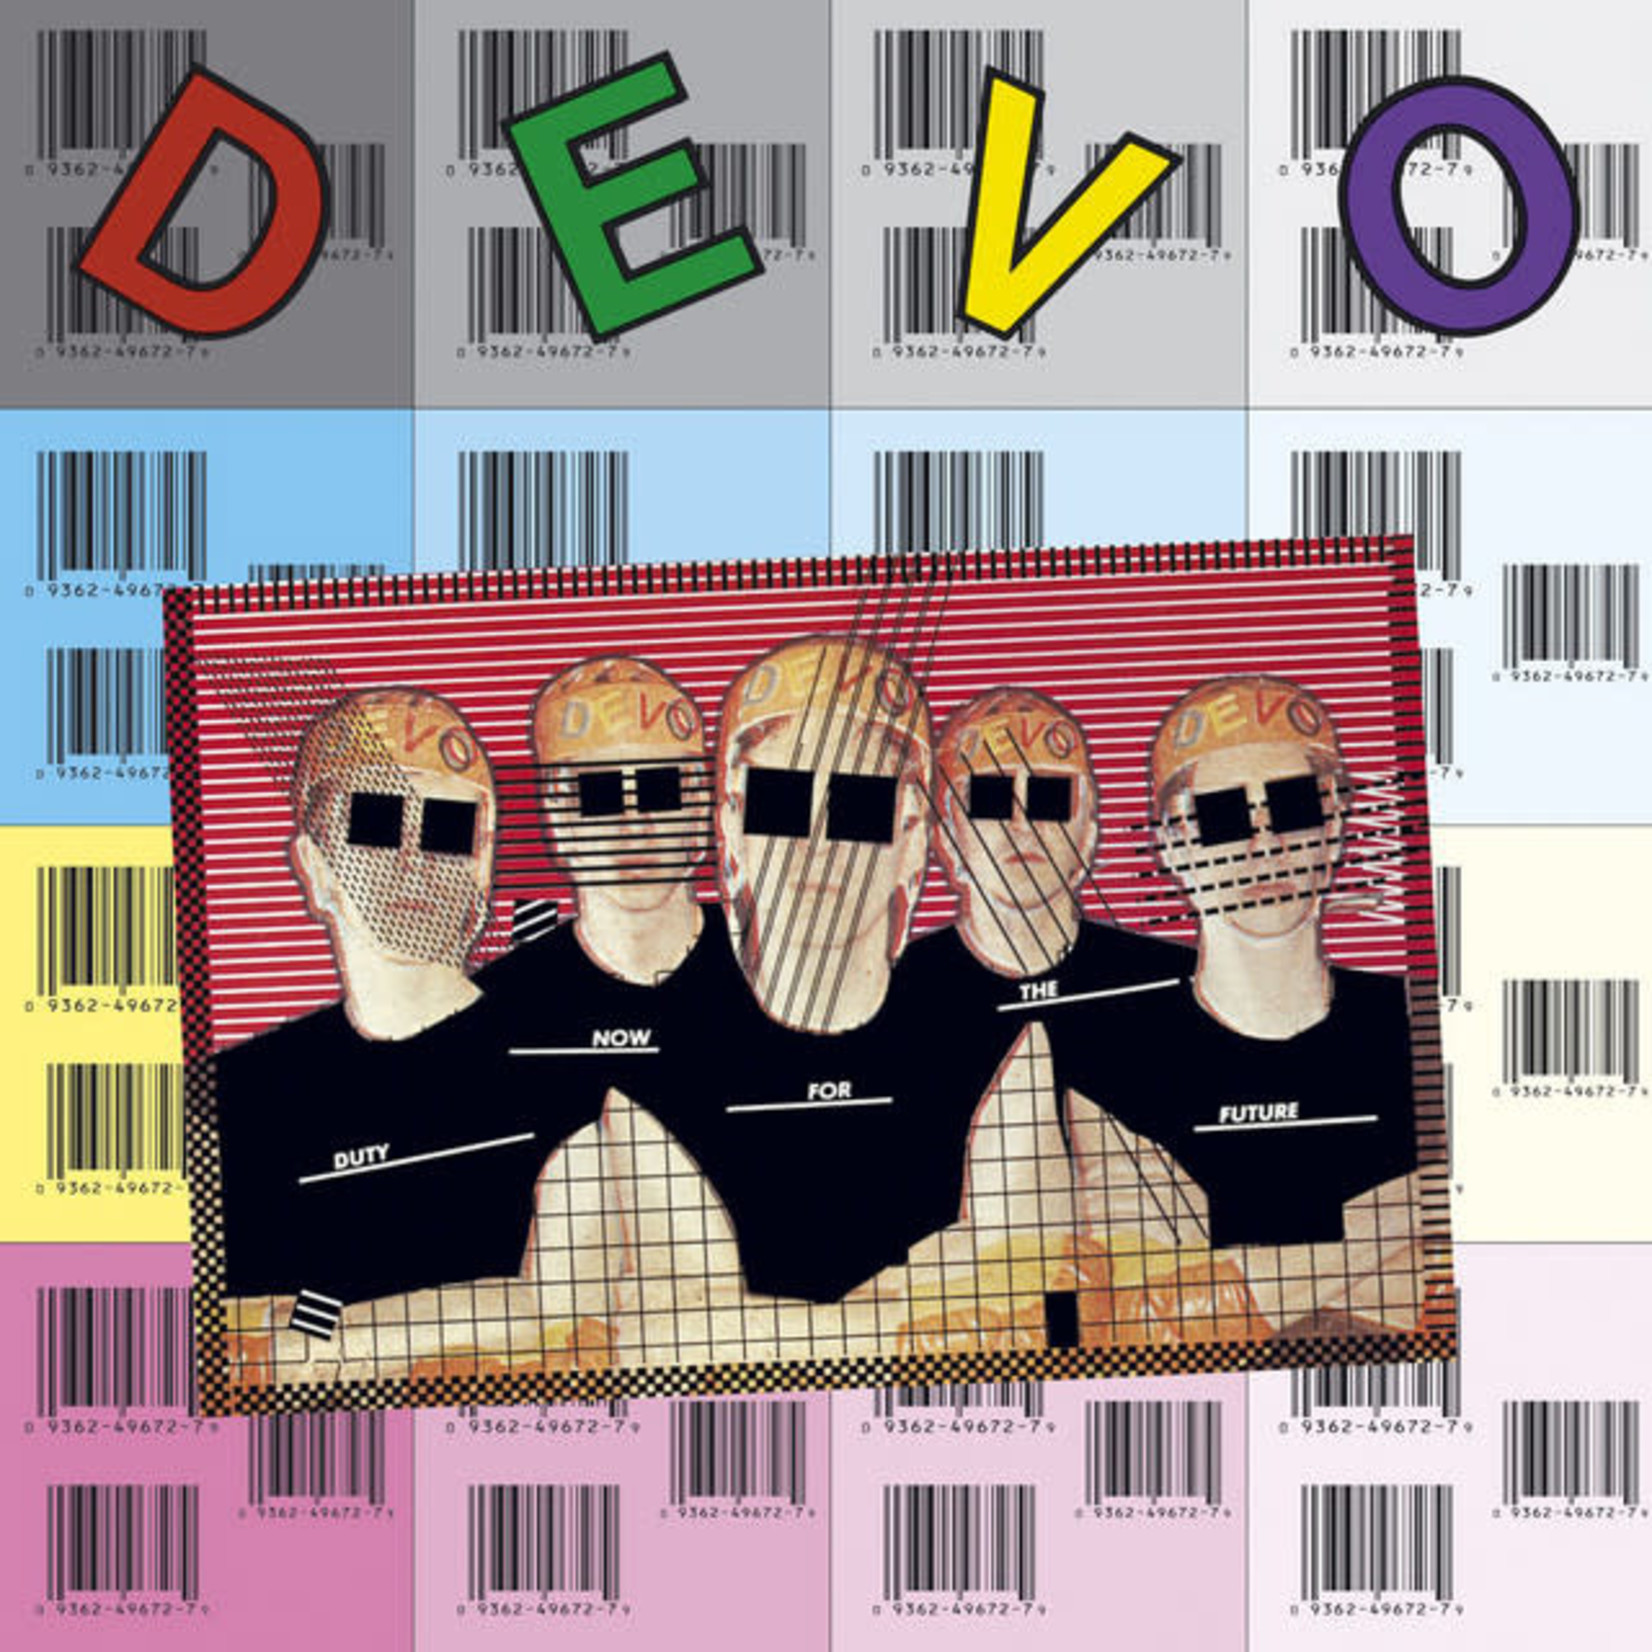 Vinyl Devo - Duty Now For the Future